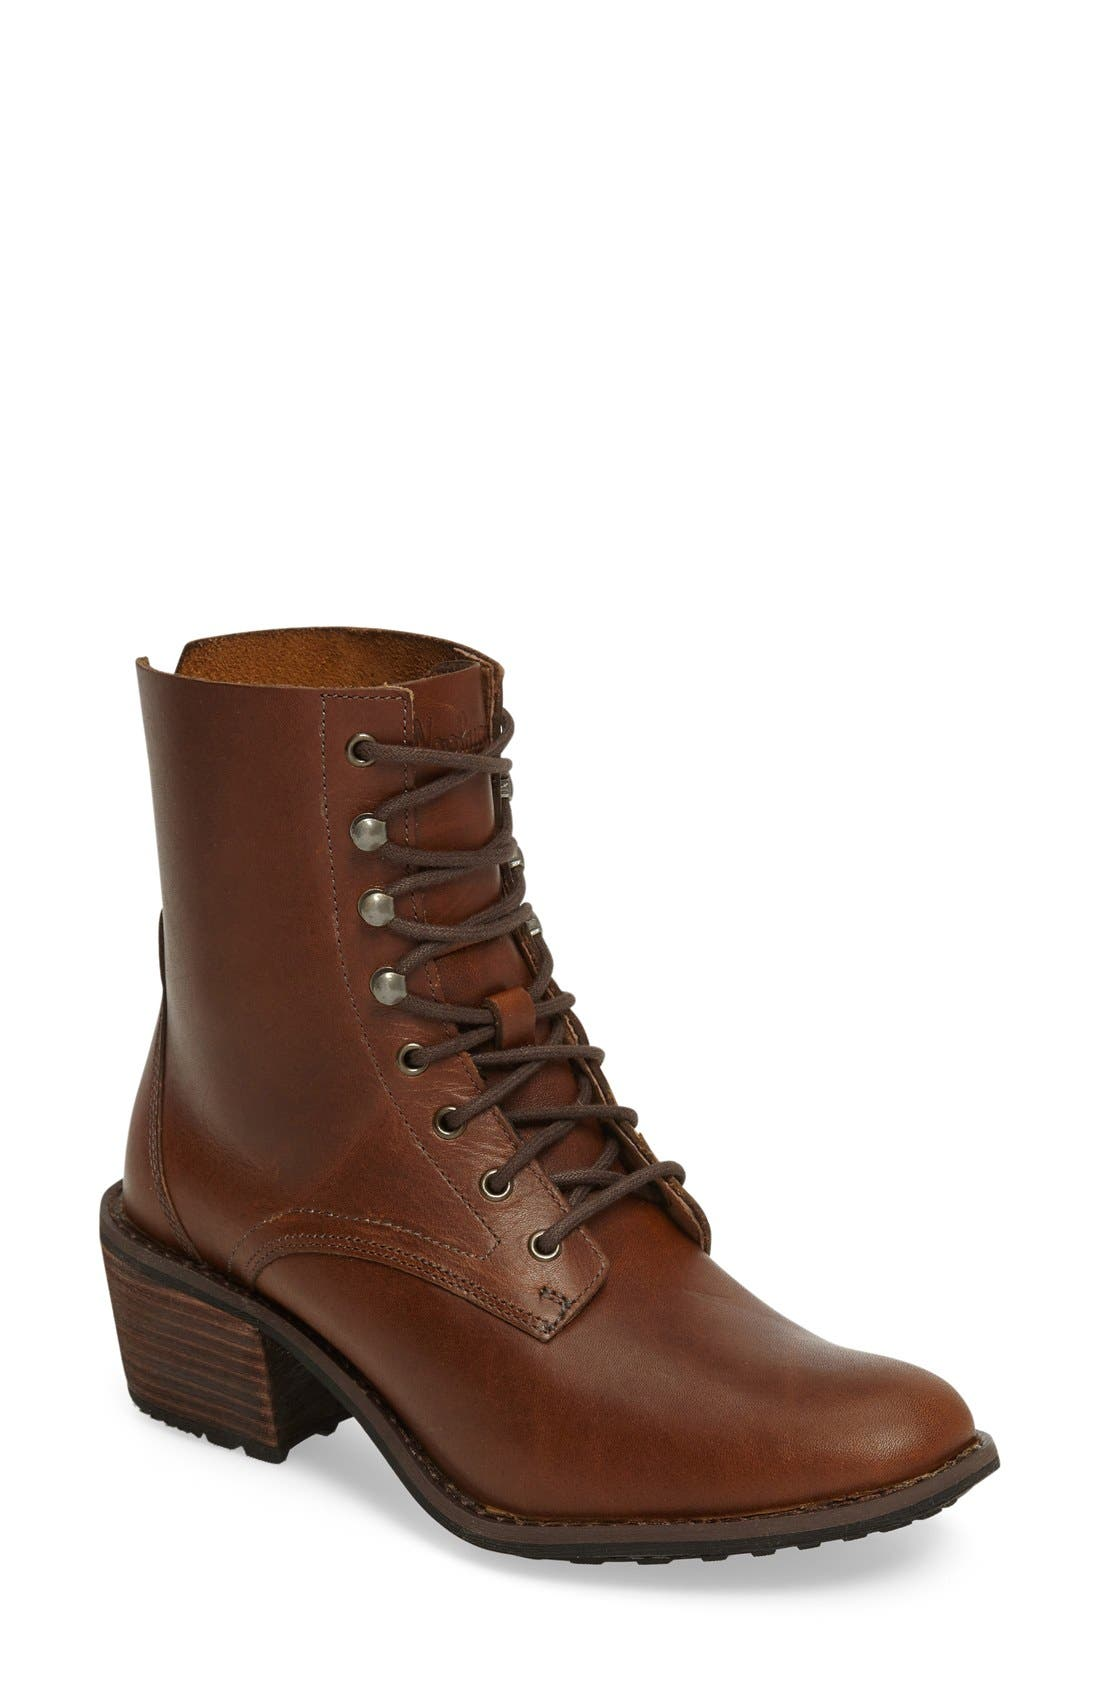 Western Territory Water Resistant Bootie,                             Main thumbnail 1, color,                             Ginger Leather